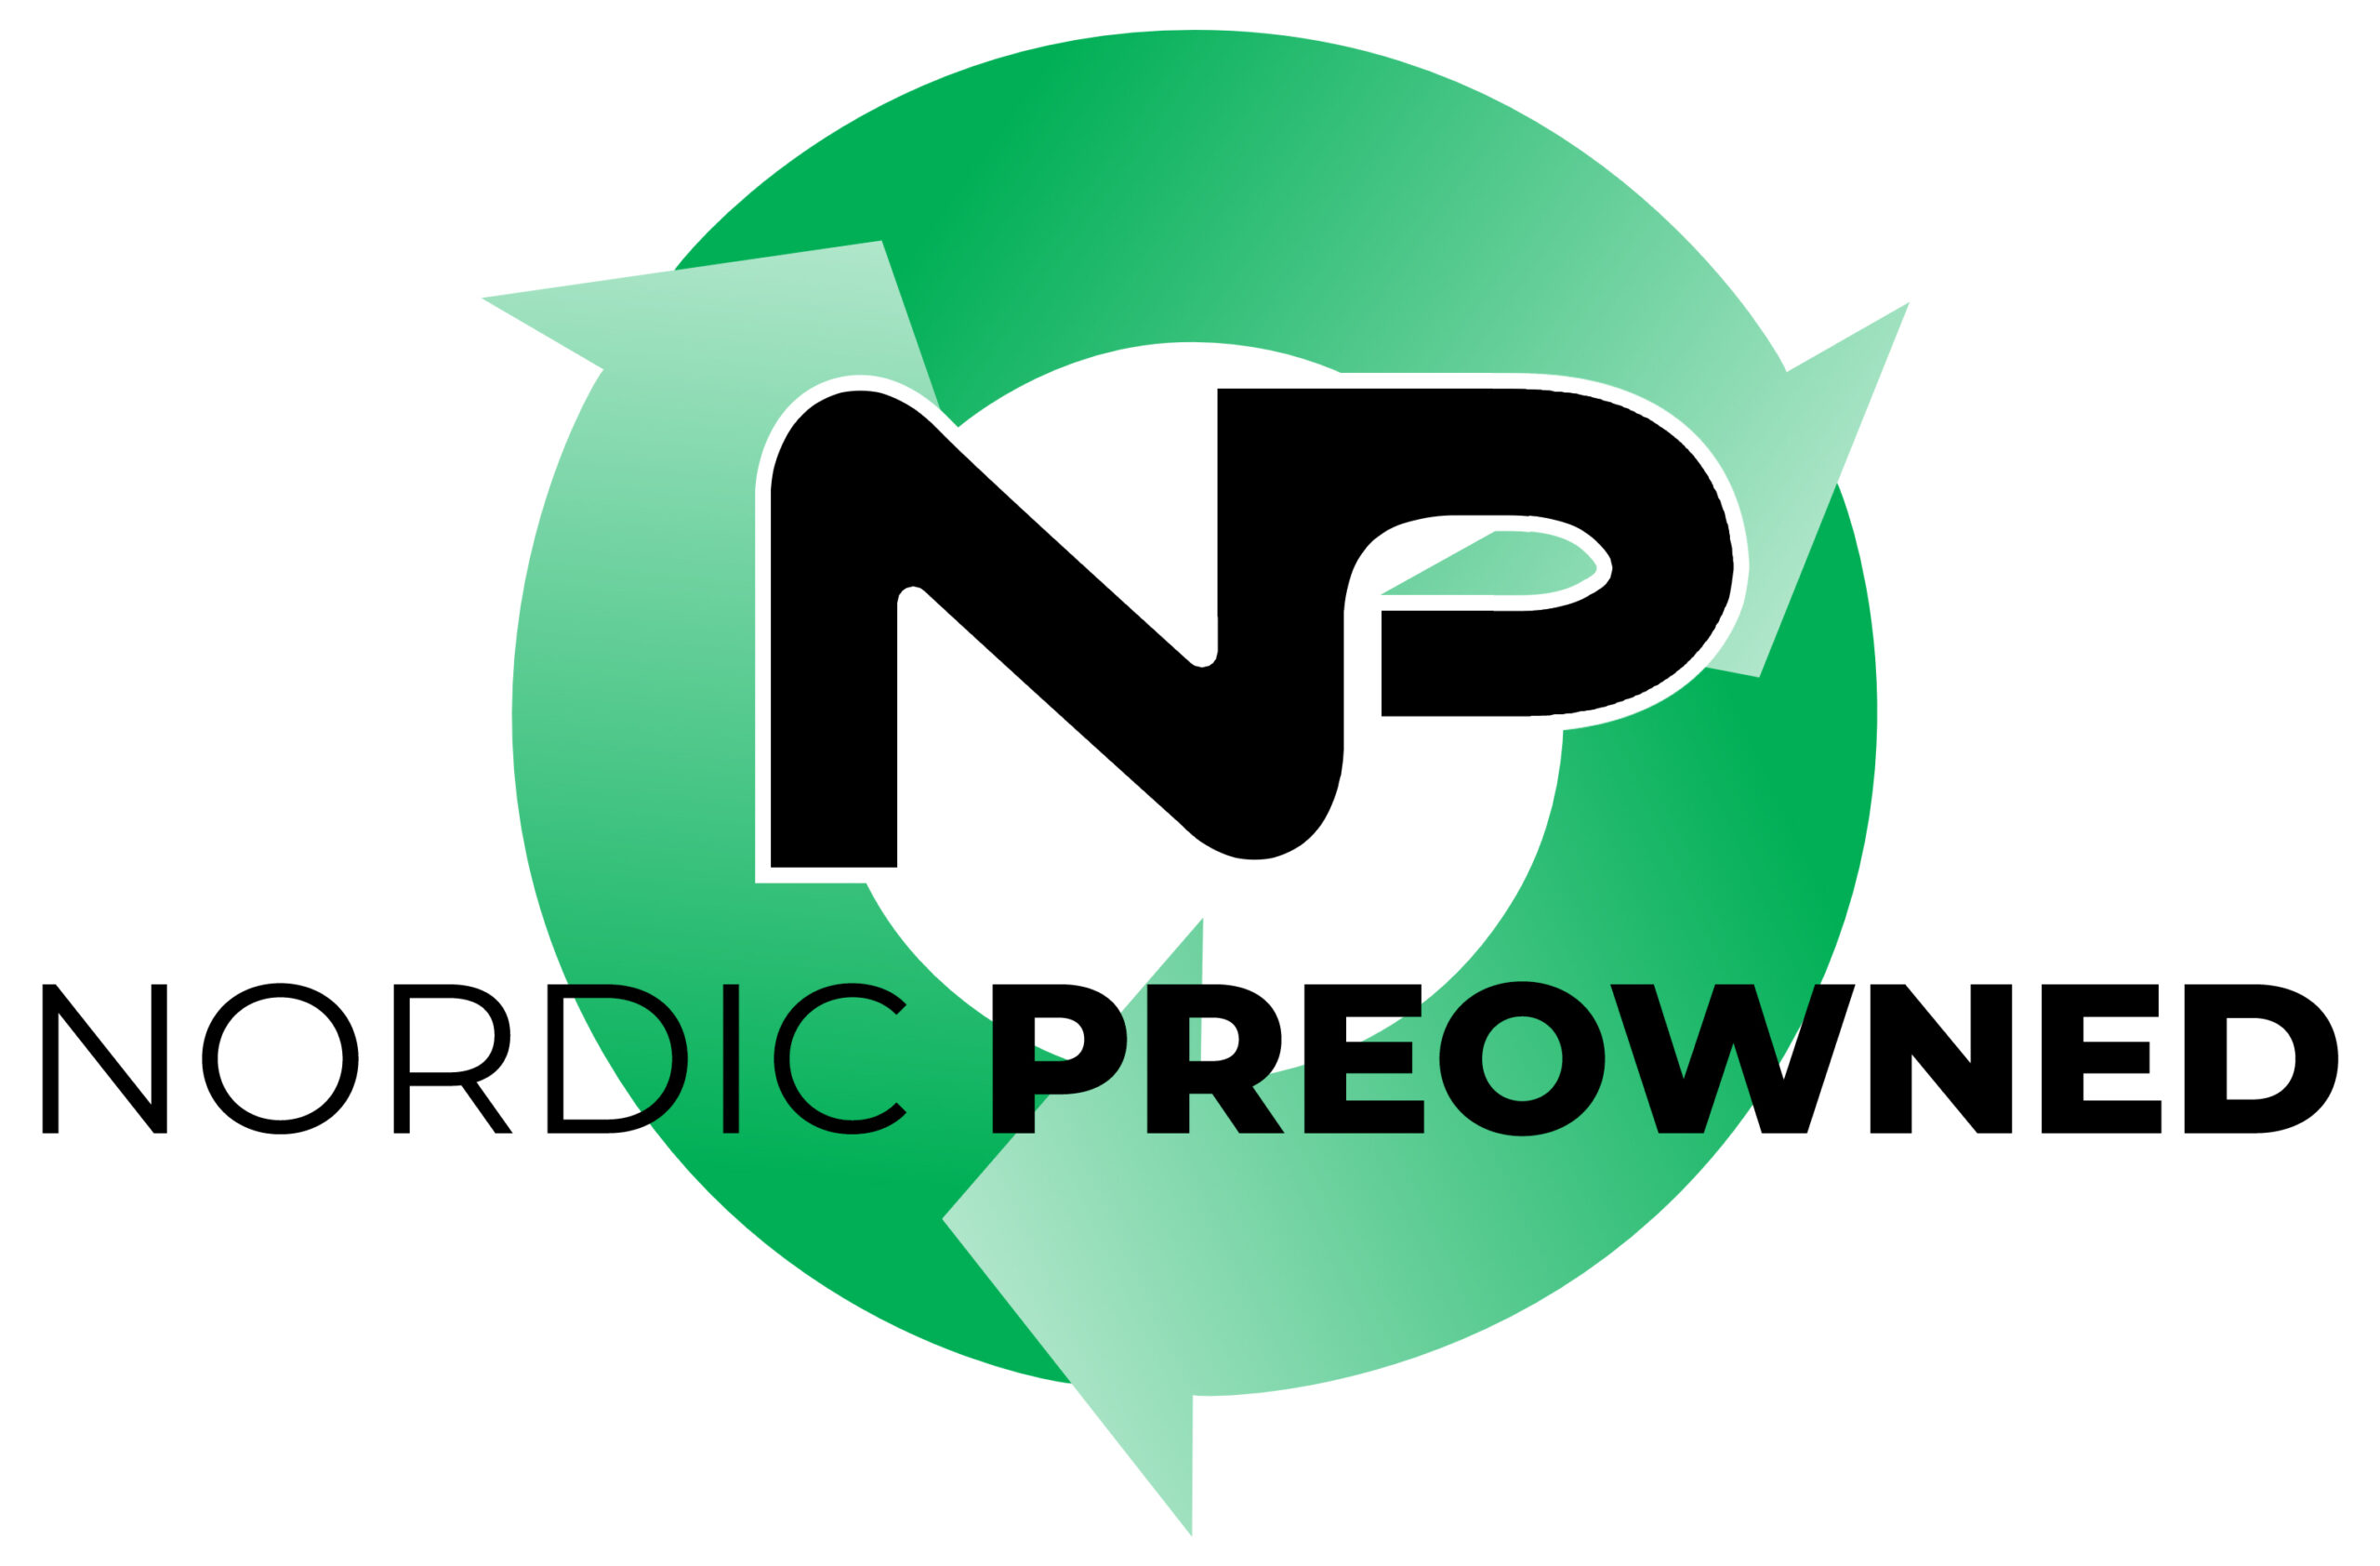 Nordic - Preowned